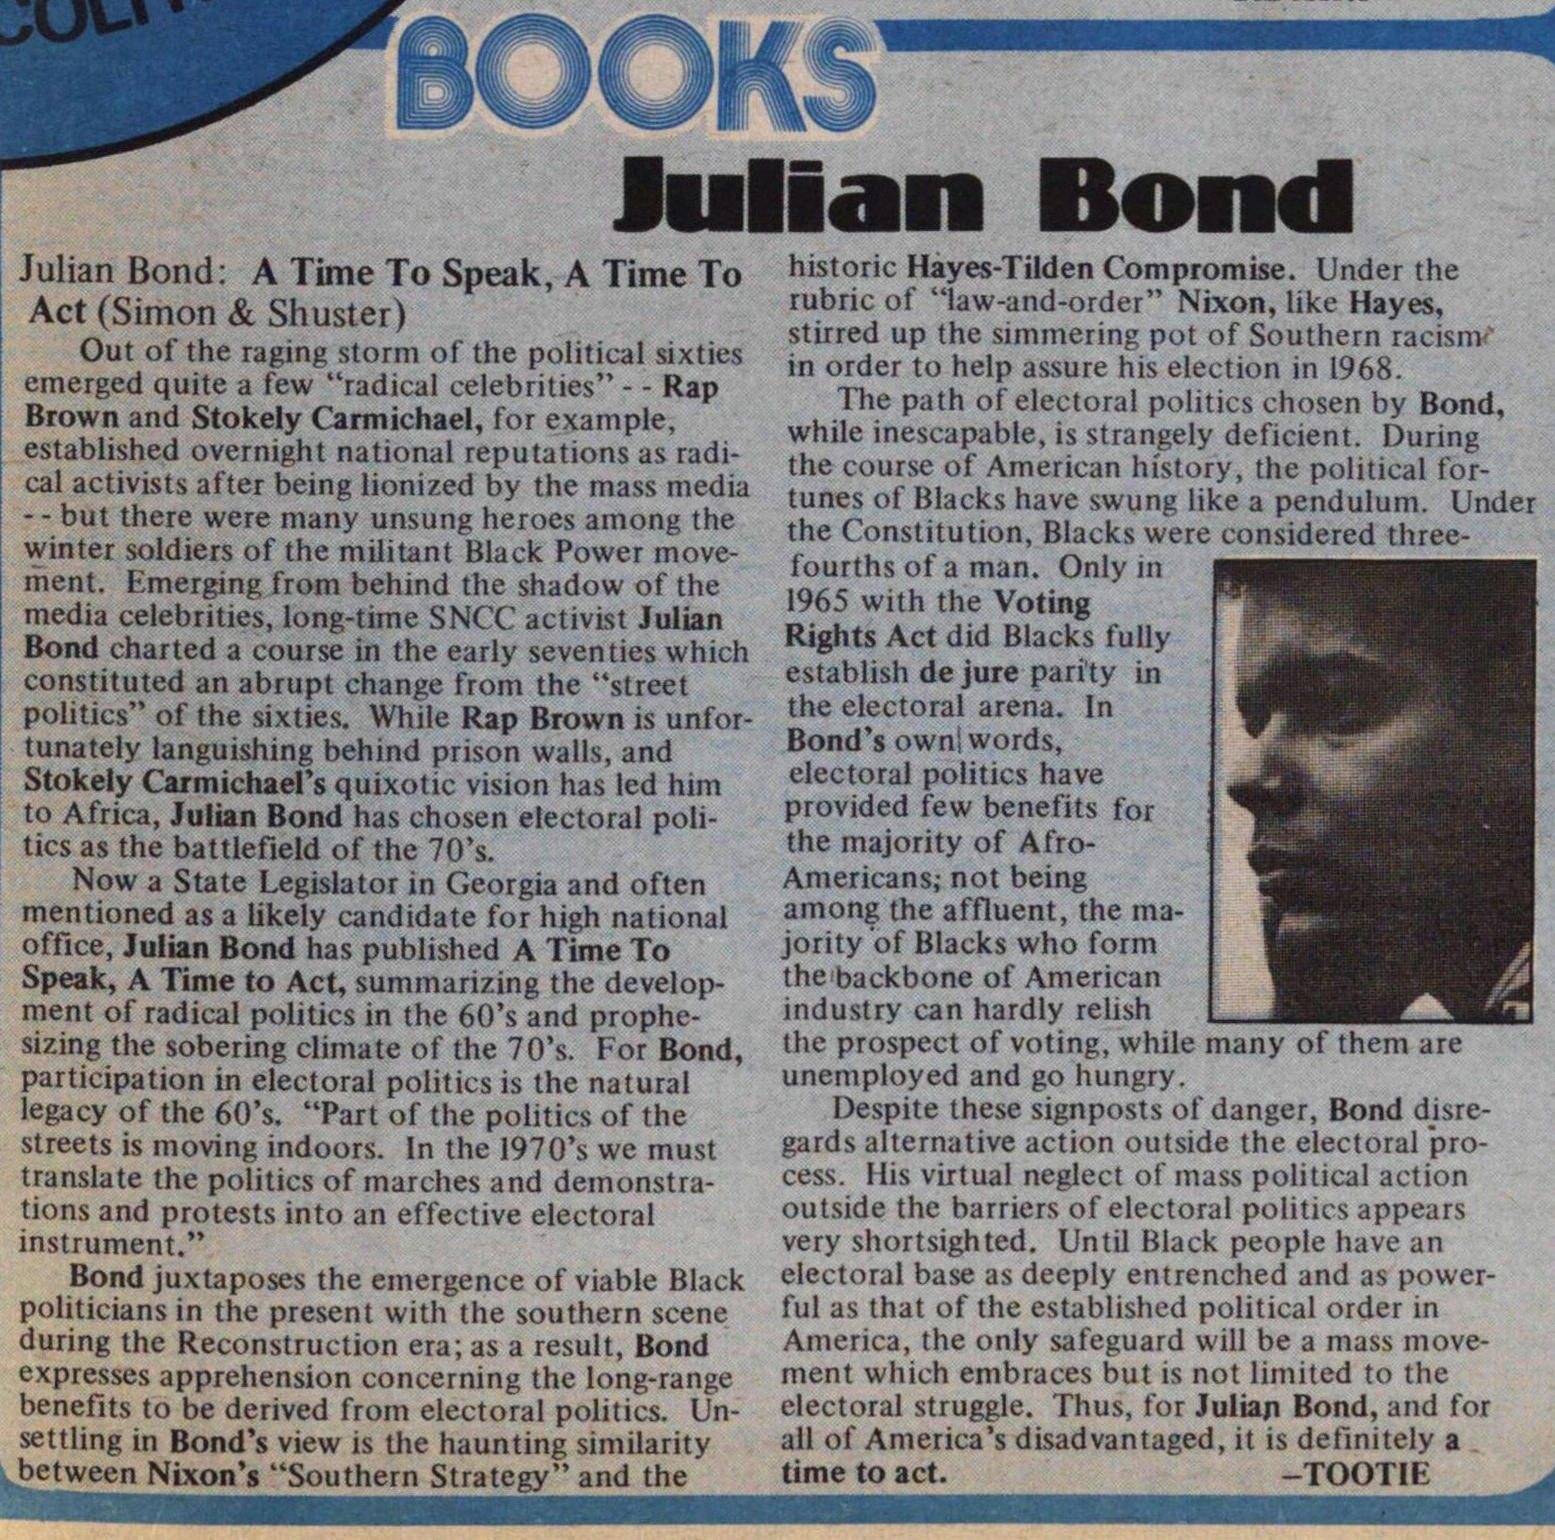 Julian Bond image